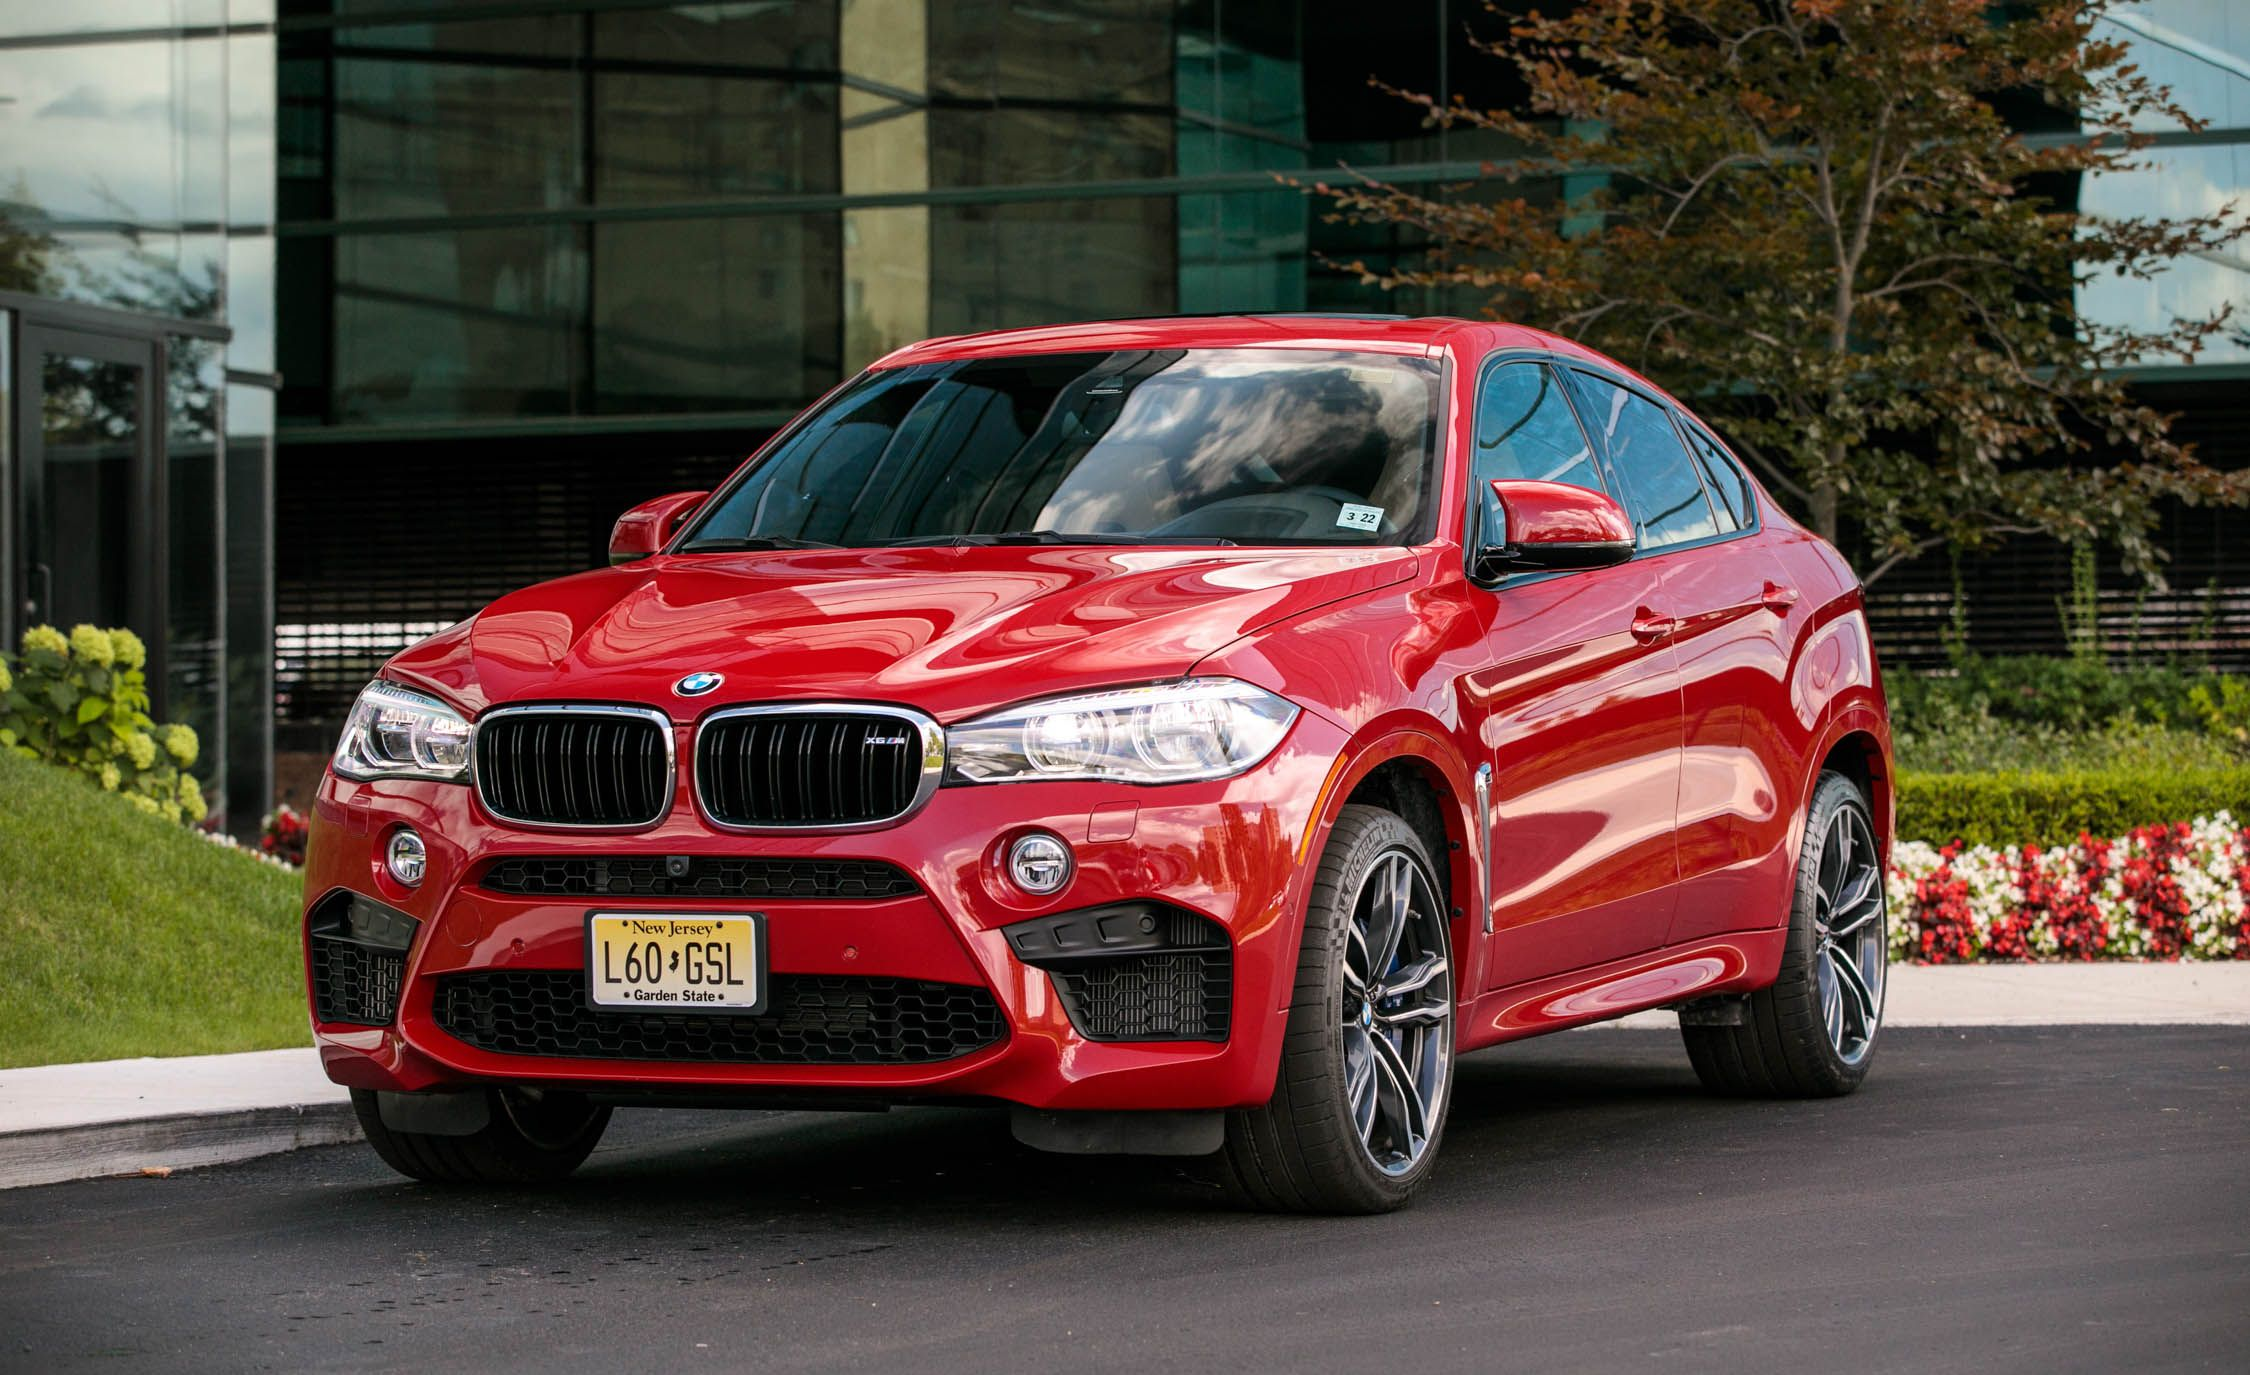 2018 Bmw X6 M Exterior Design And Dimensions Review Car And Driver